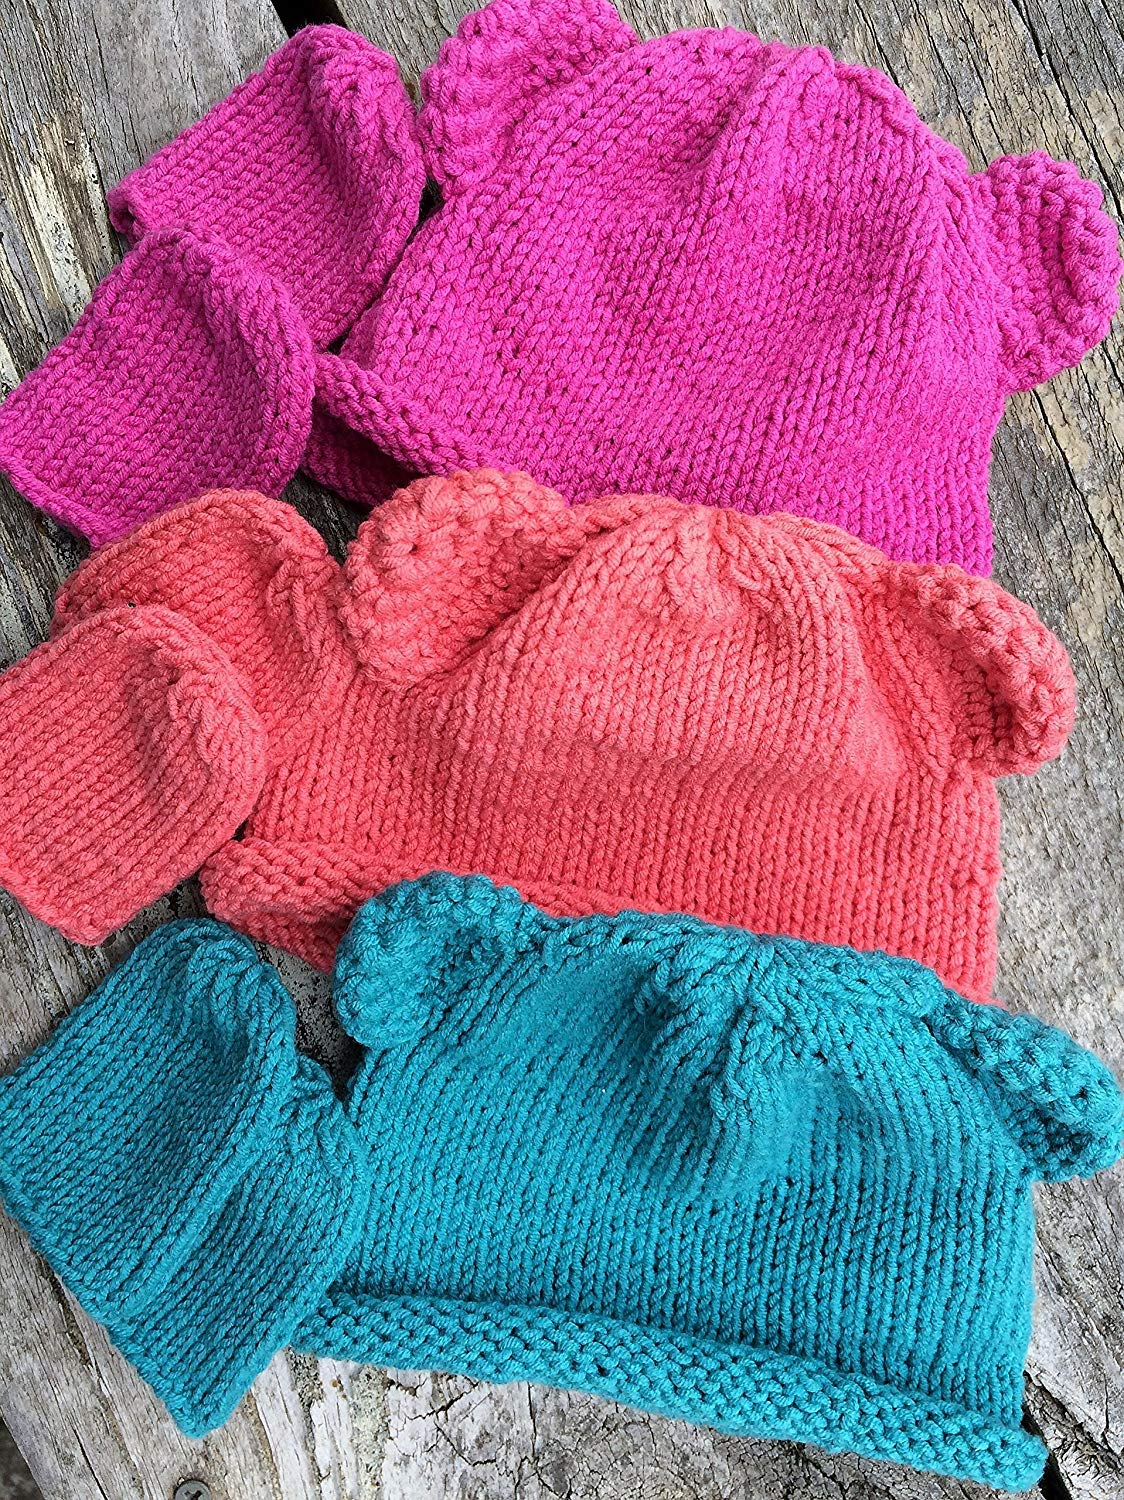 Hand Knitted Soft Baby Beanie Hats and Mitts Teddy Bear Beanies for Babies 0-6 months